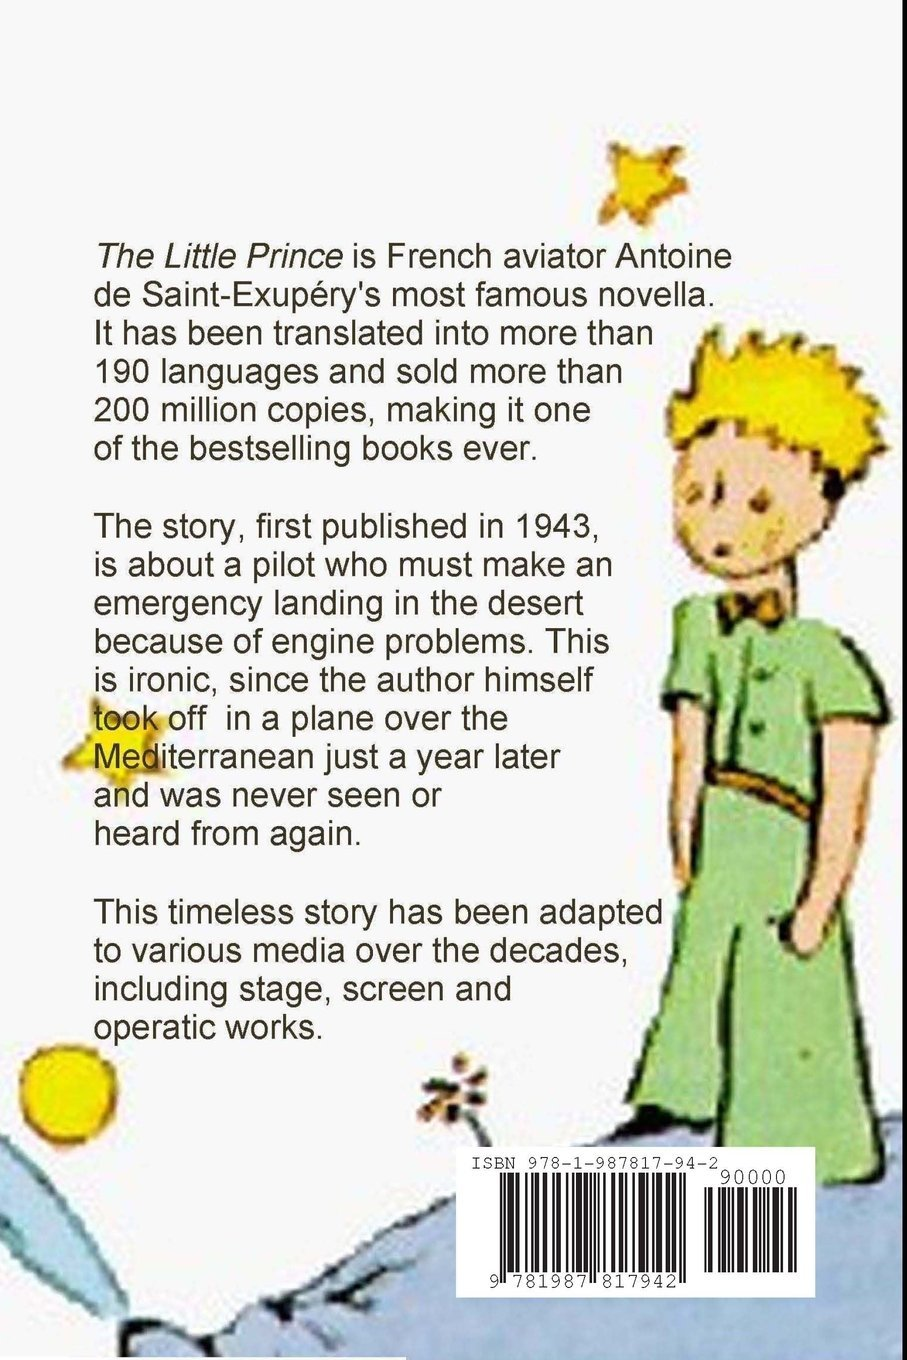 the little prince antoine de saint exup eacute ry evan kahler the little prince antoine de saint exupeacutery evan kahler katherine woods 9781987817942 com books